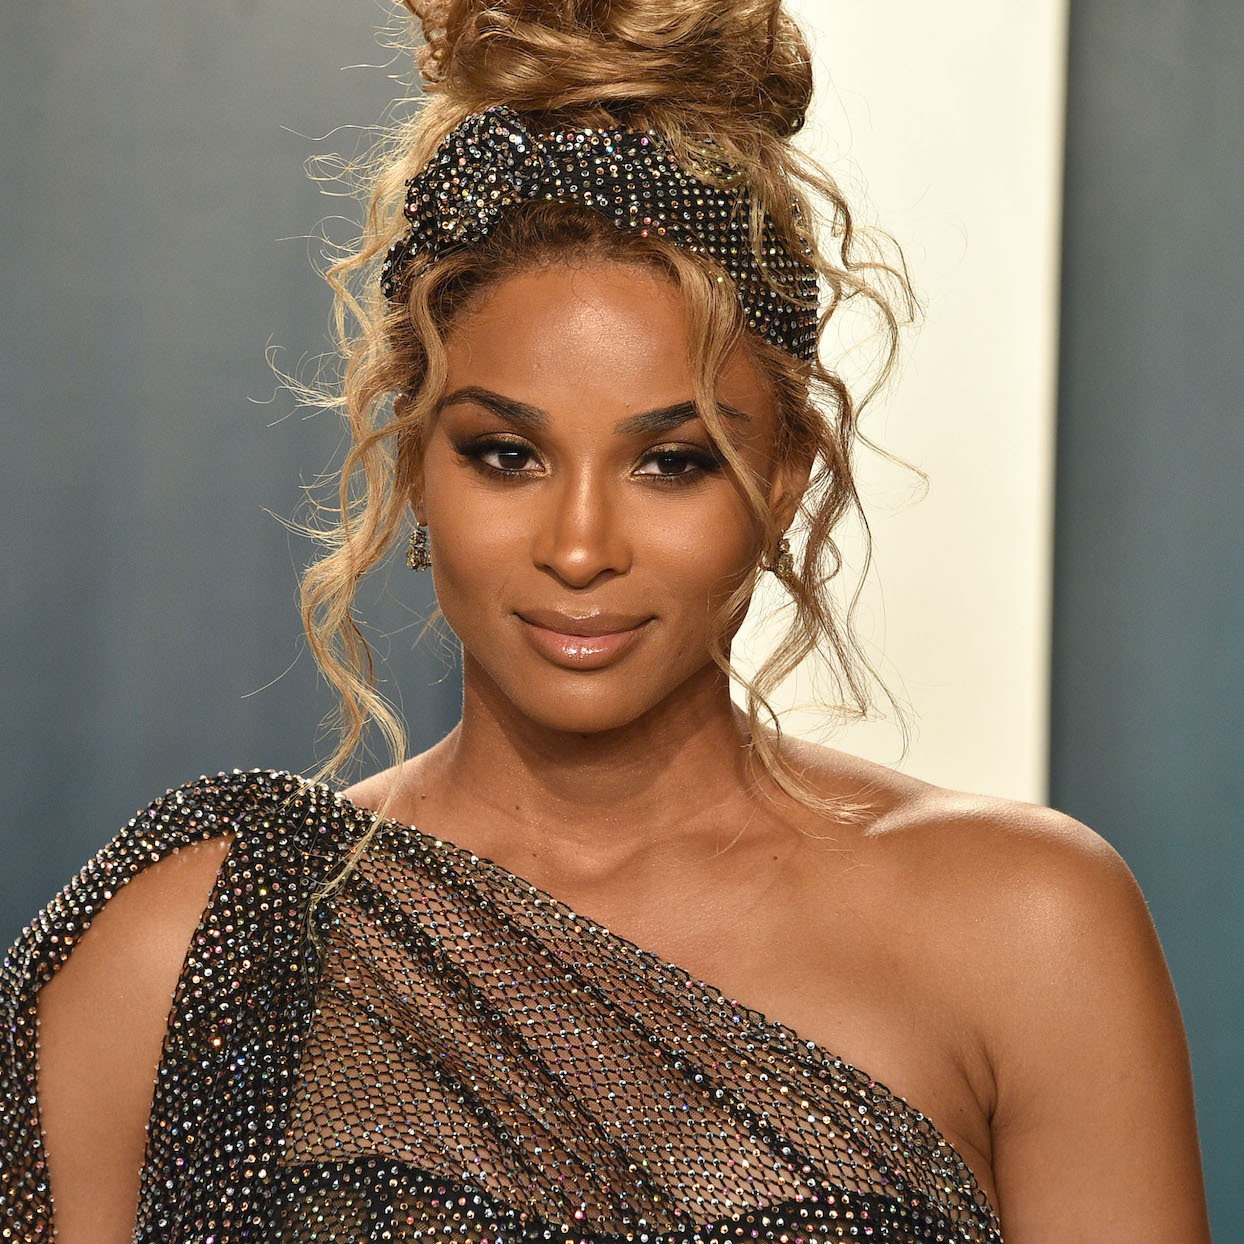 Ciara attends the 2020 Vanity Fair Oscar Party at Wallis Annenberg Center for the Performing Arts on February 09, 2020 in Beverly Hills, California